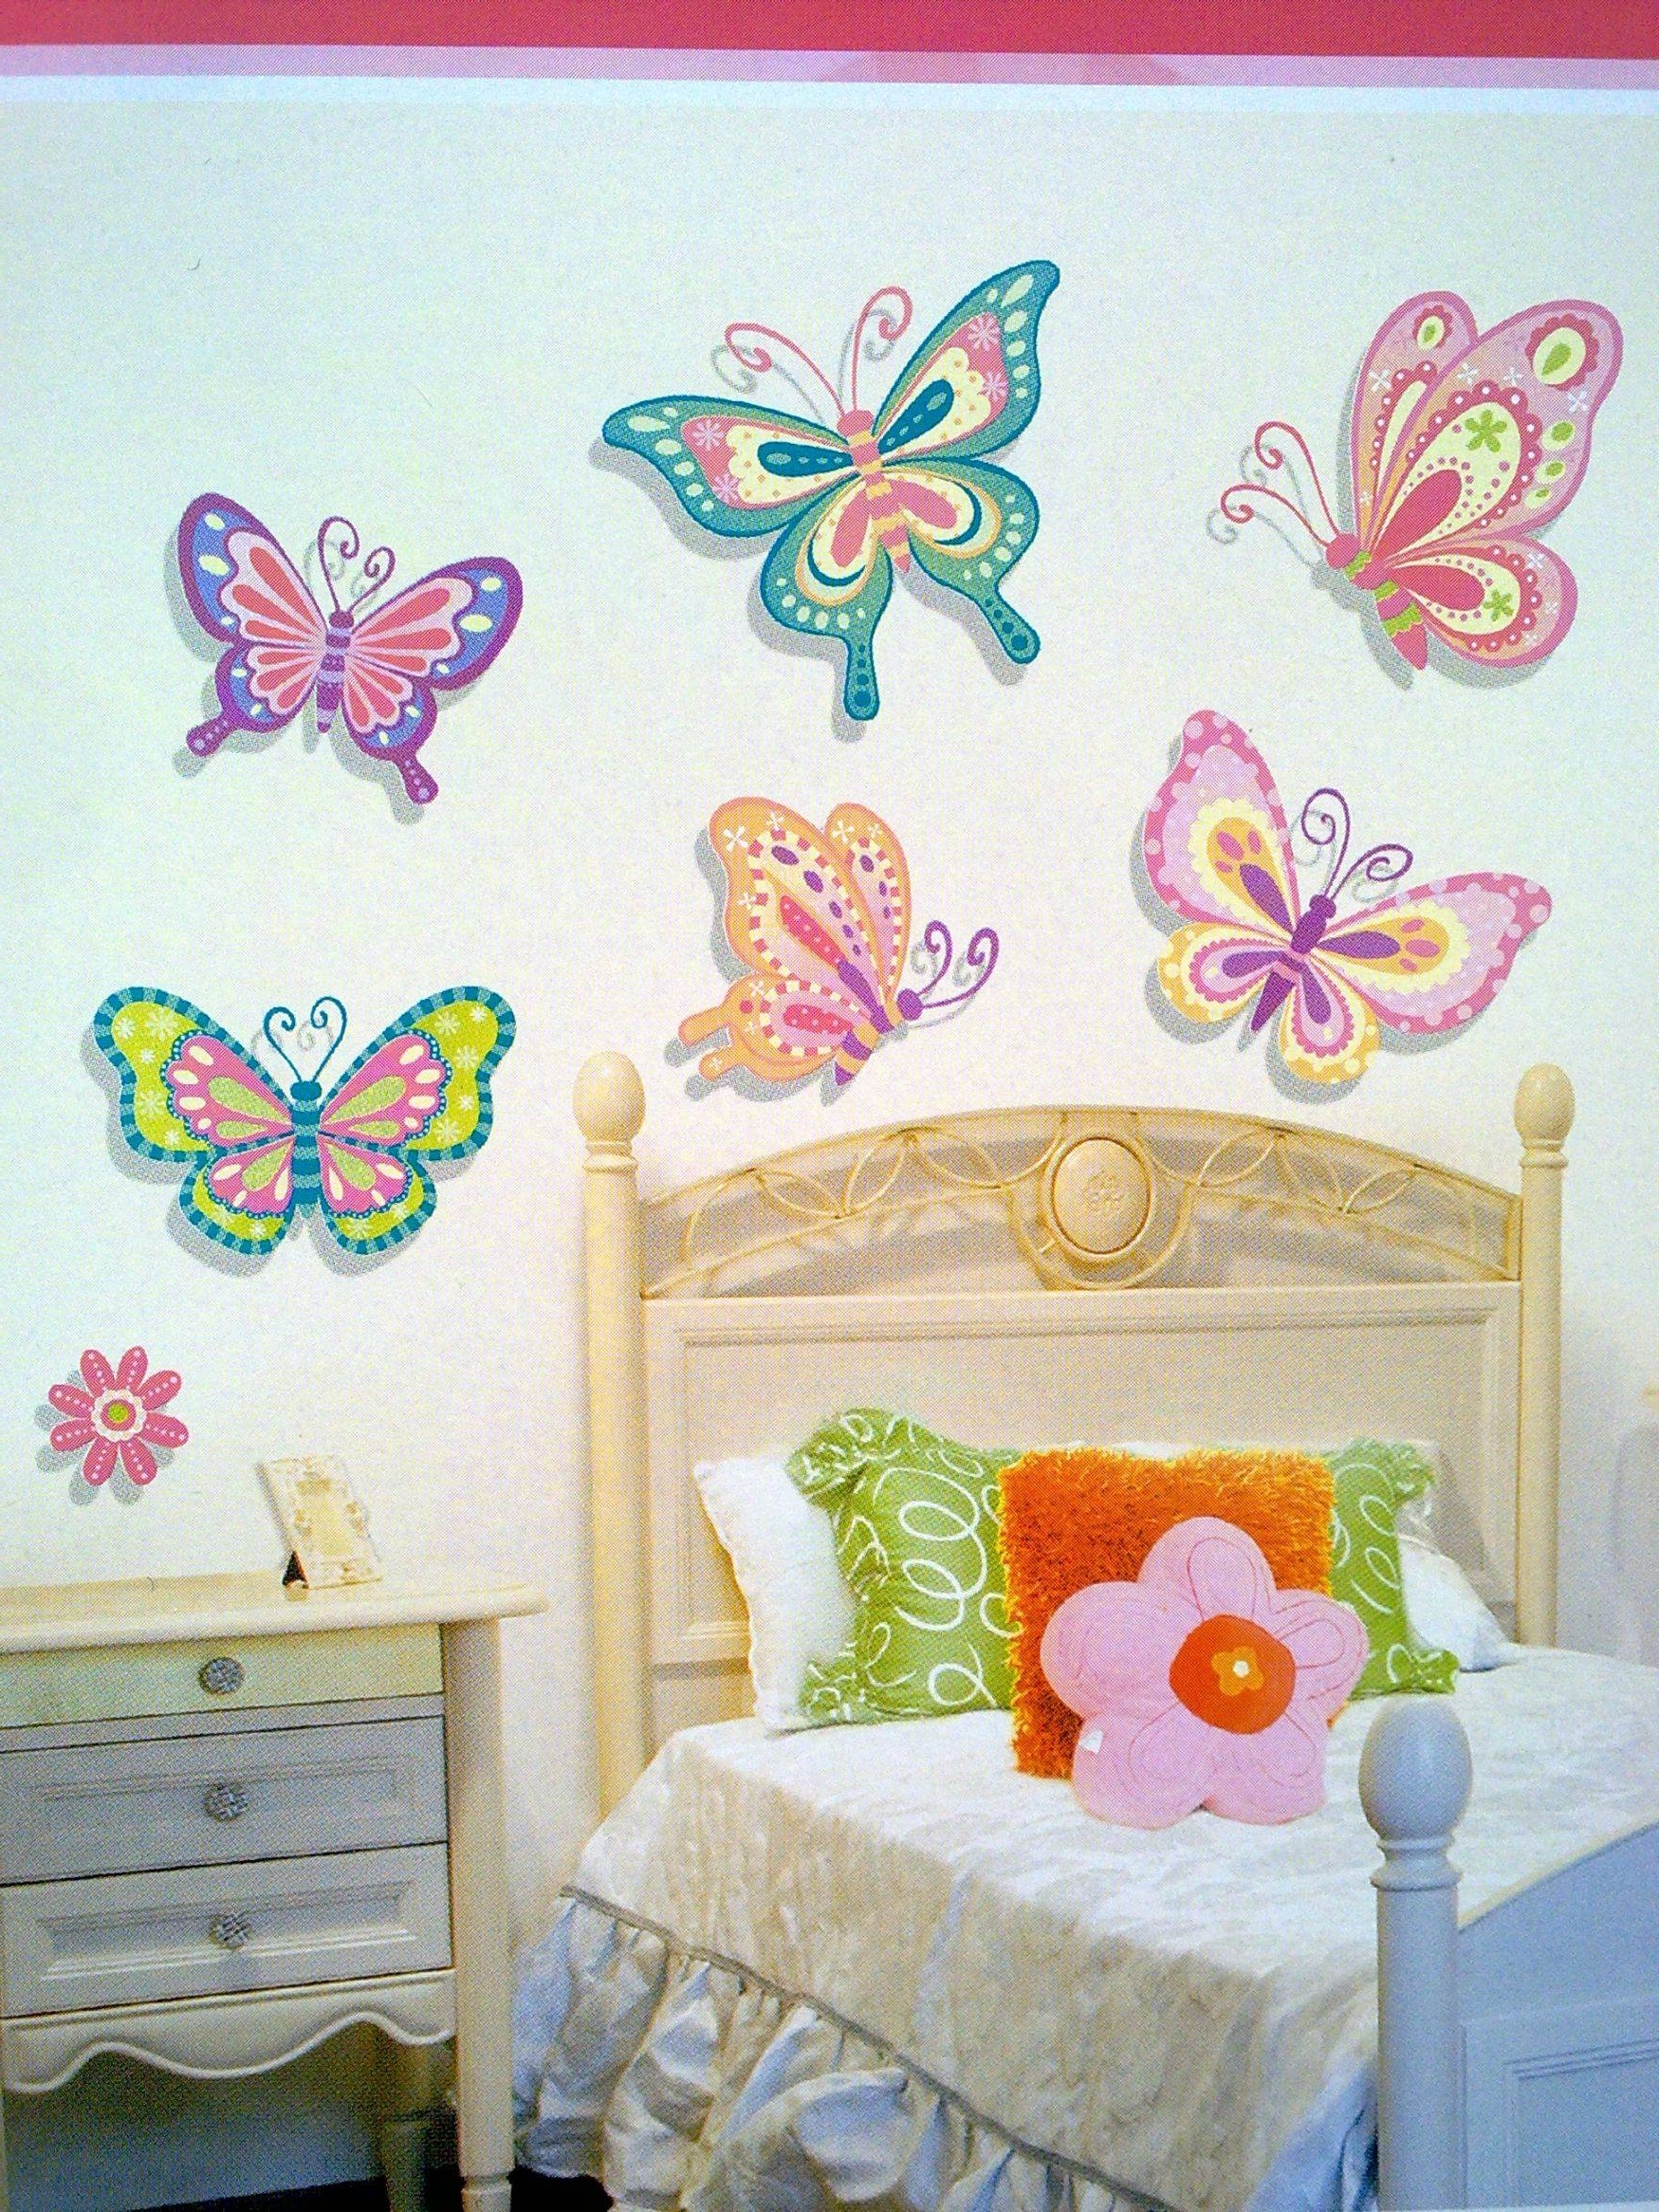 Most Recently Released Childrens Fabric Wall Art In Wall Decor : Full Wall Decals Butterfly Wall Stickers Wall Art (View 12 of 15)